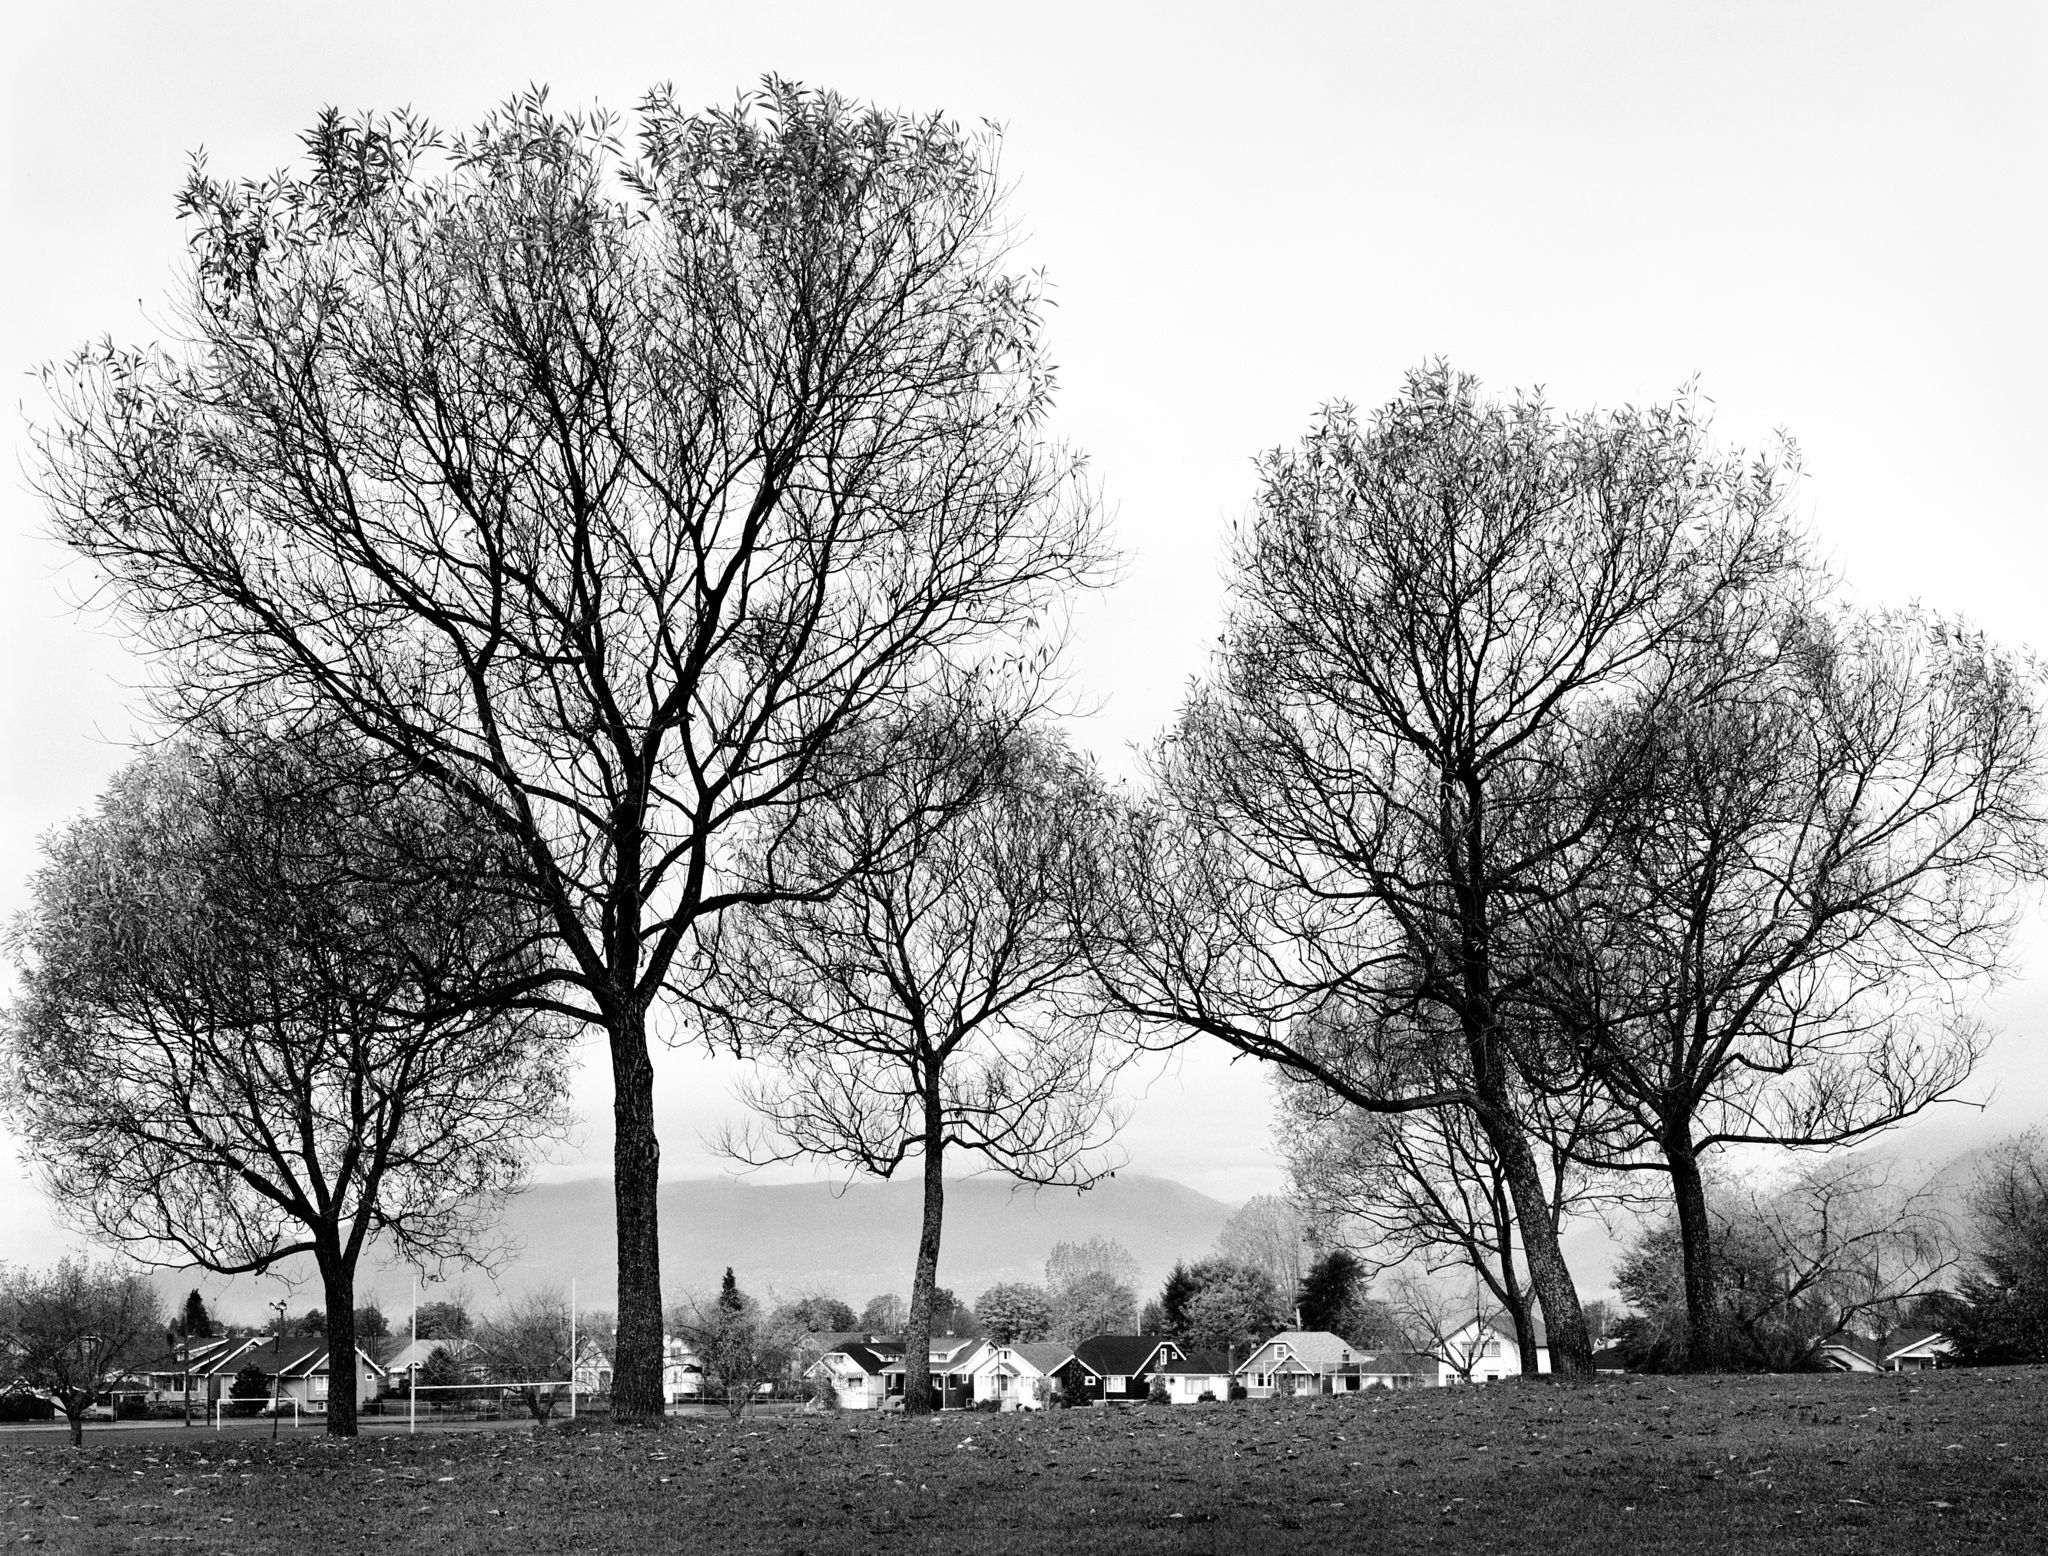 Photograph trees in vancouver black and white by pekka pasivirta on 500px